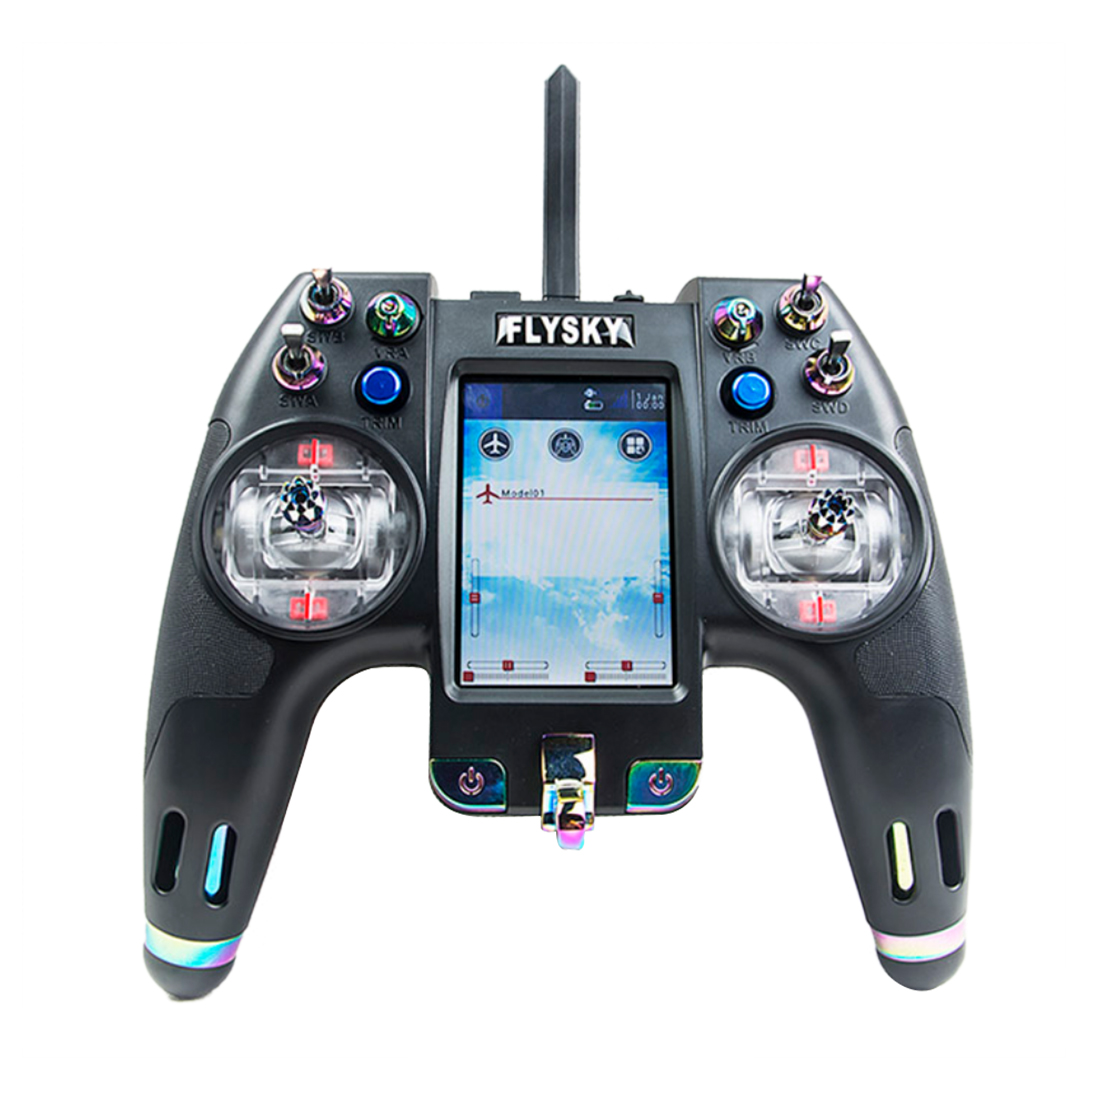 Flysky FS-NV14 14CH Nirvana RC Transmitter Remote Controller with iA8X + X8B Dual Receiver 3.5 Inch Display Open Source Parts flysky fs nv14 2 4g 14ch nirvana remote controller transmitter open source with ia8x rx for fpv racing drone rc helicopter